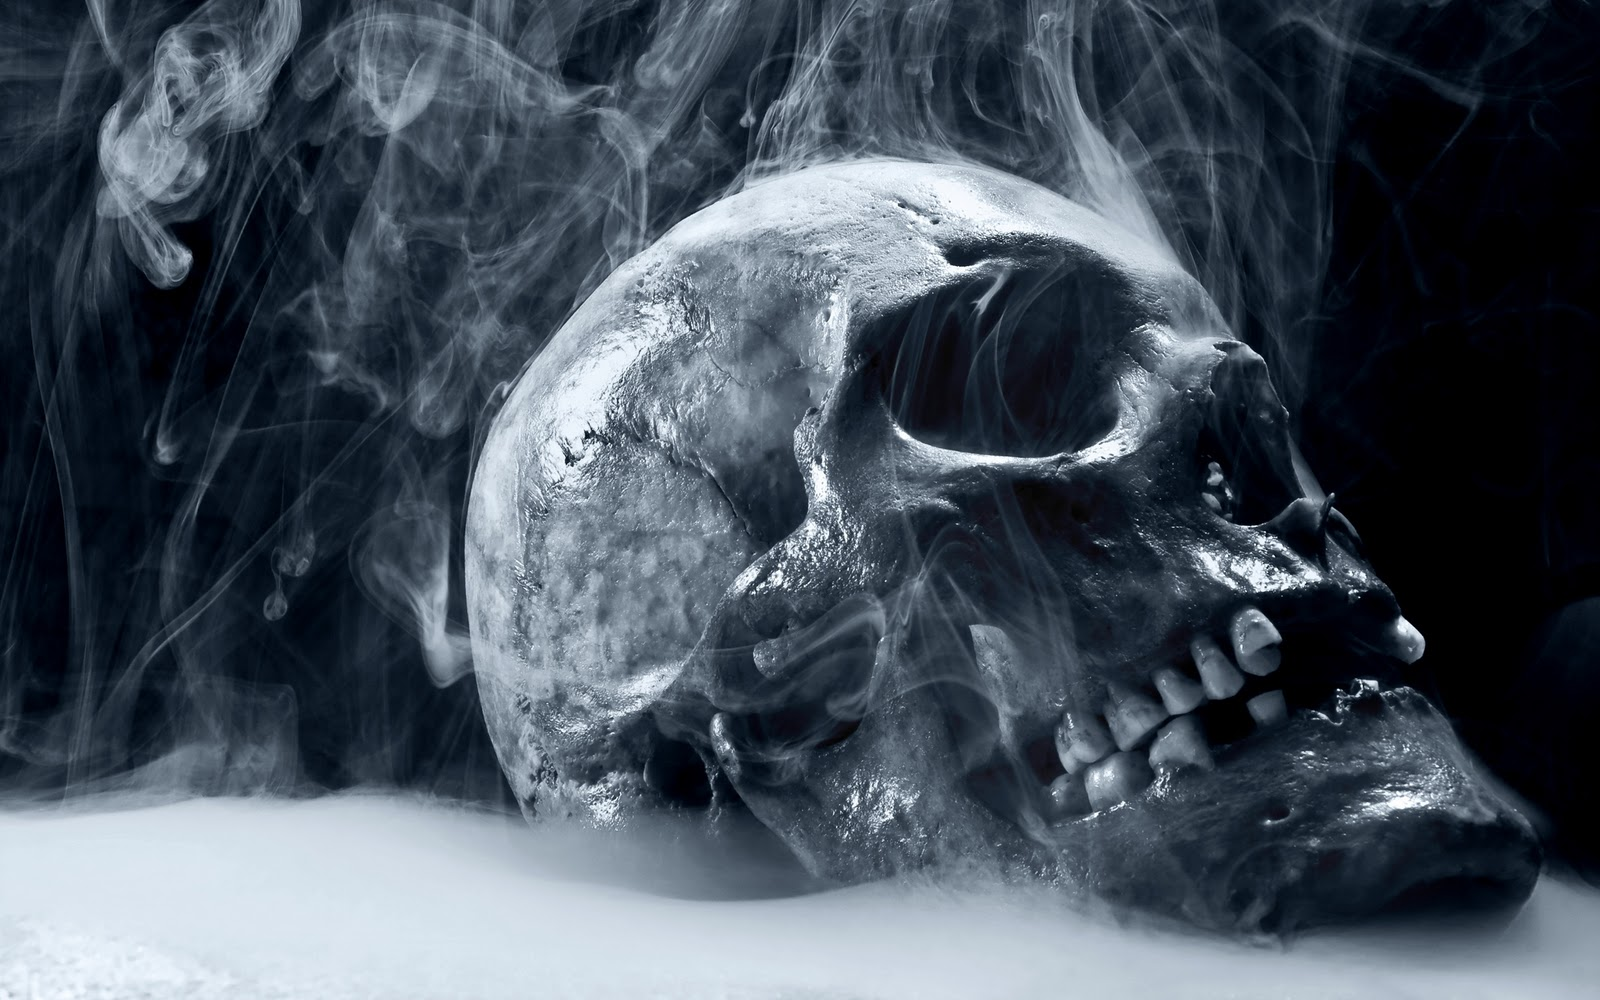 skull wallpaper wallpapers hd - photo #4